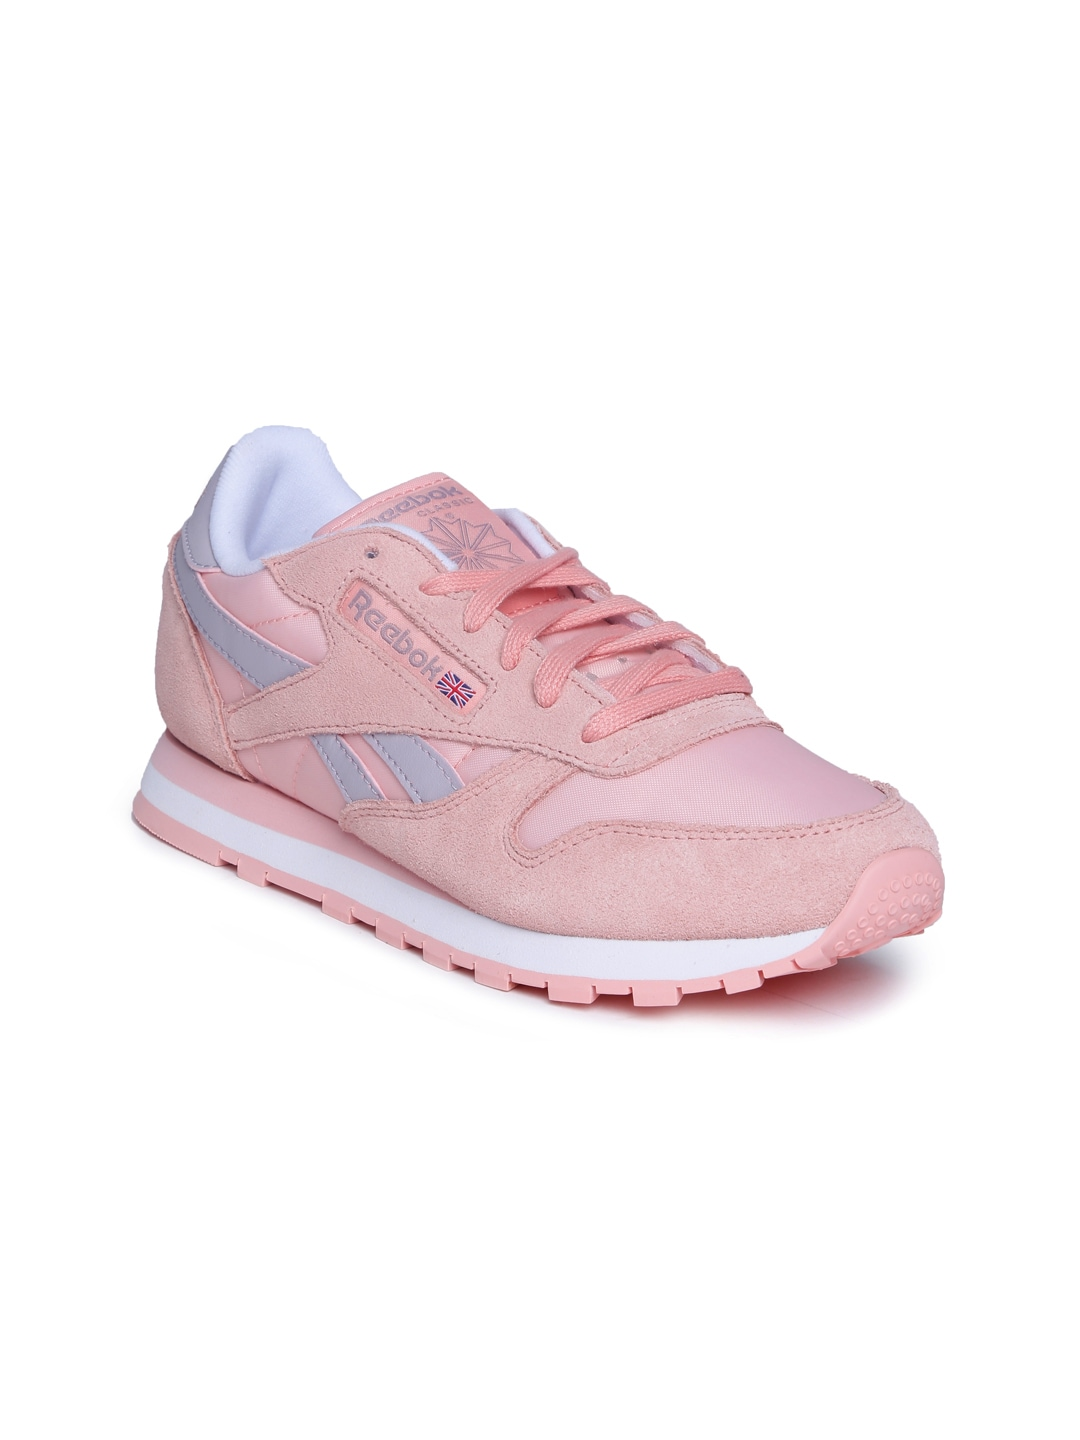 Buy Reebok Classic Women Baby Pink Suede Running Shoes